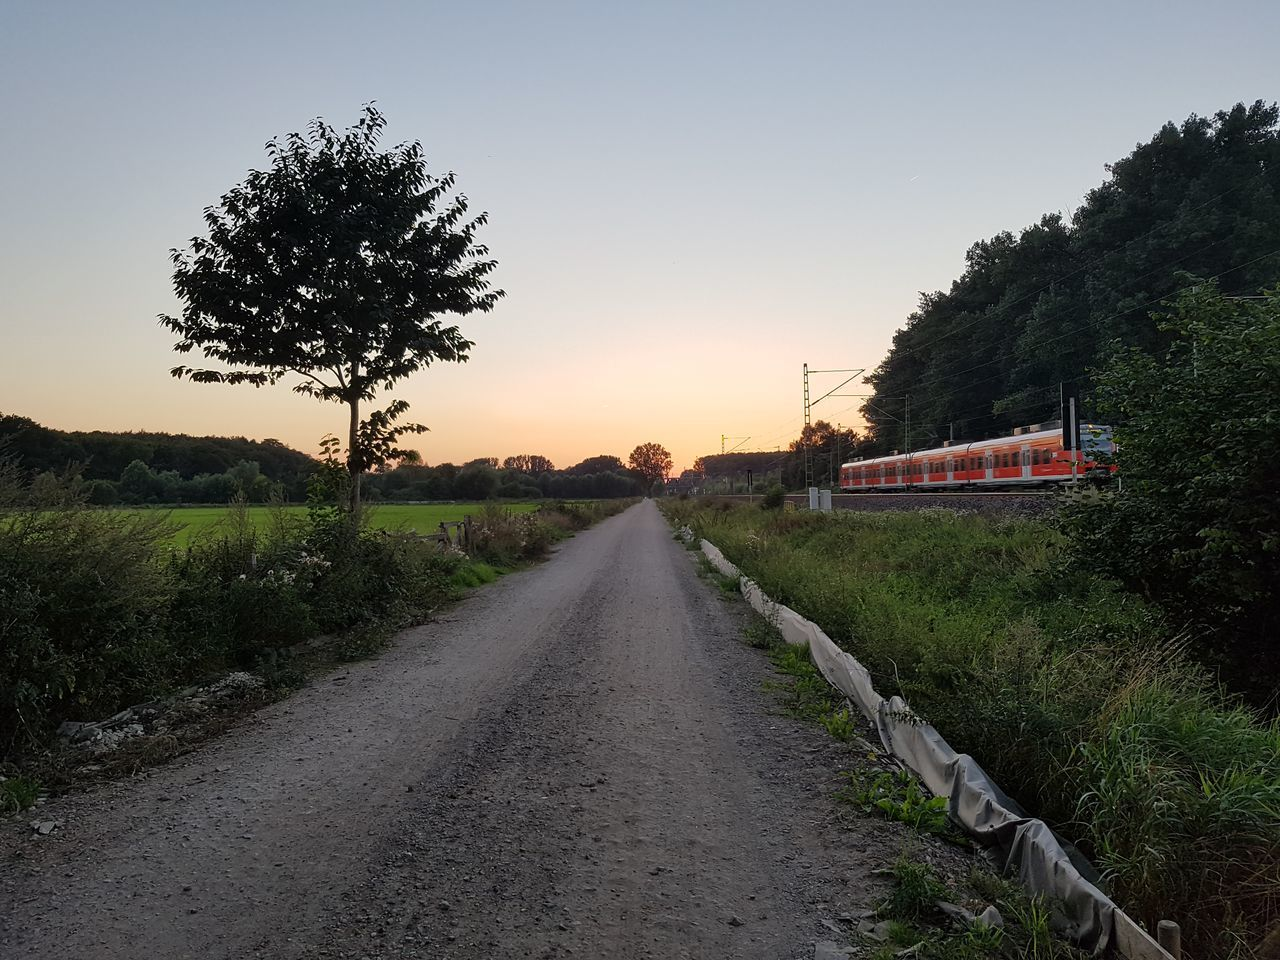 The Way Forward Tree Clear Sky Diminishing Perspective Tranquil Scene Transportation Tranquility Landscape Grass Empty Vanishing Point Field Nature Non-urban Scene Scenics Outdoors Sky Beauty In Nature Train Sunset Summer Day No People Nature Clear Sky